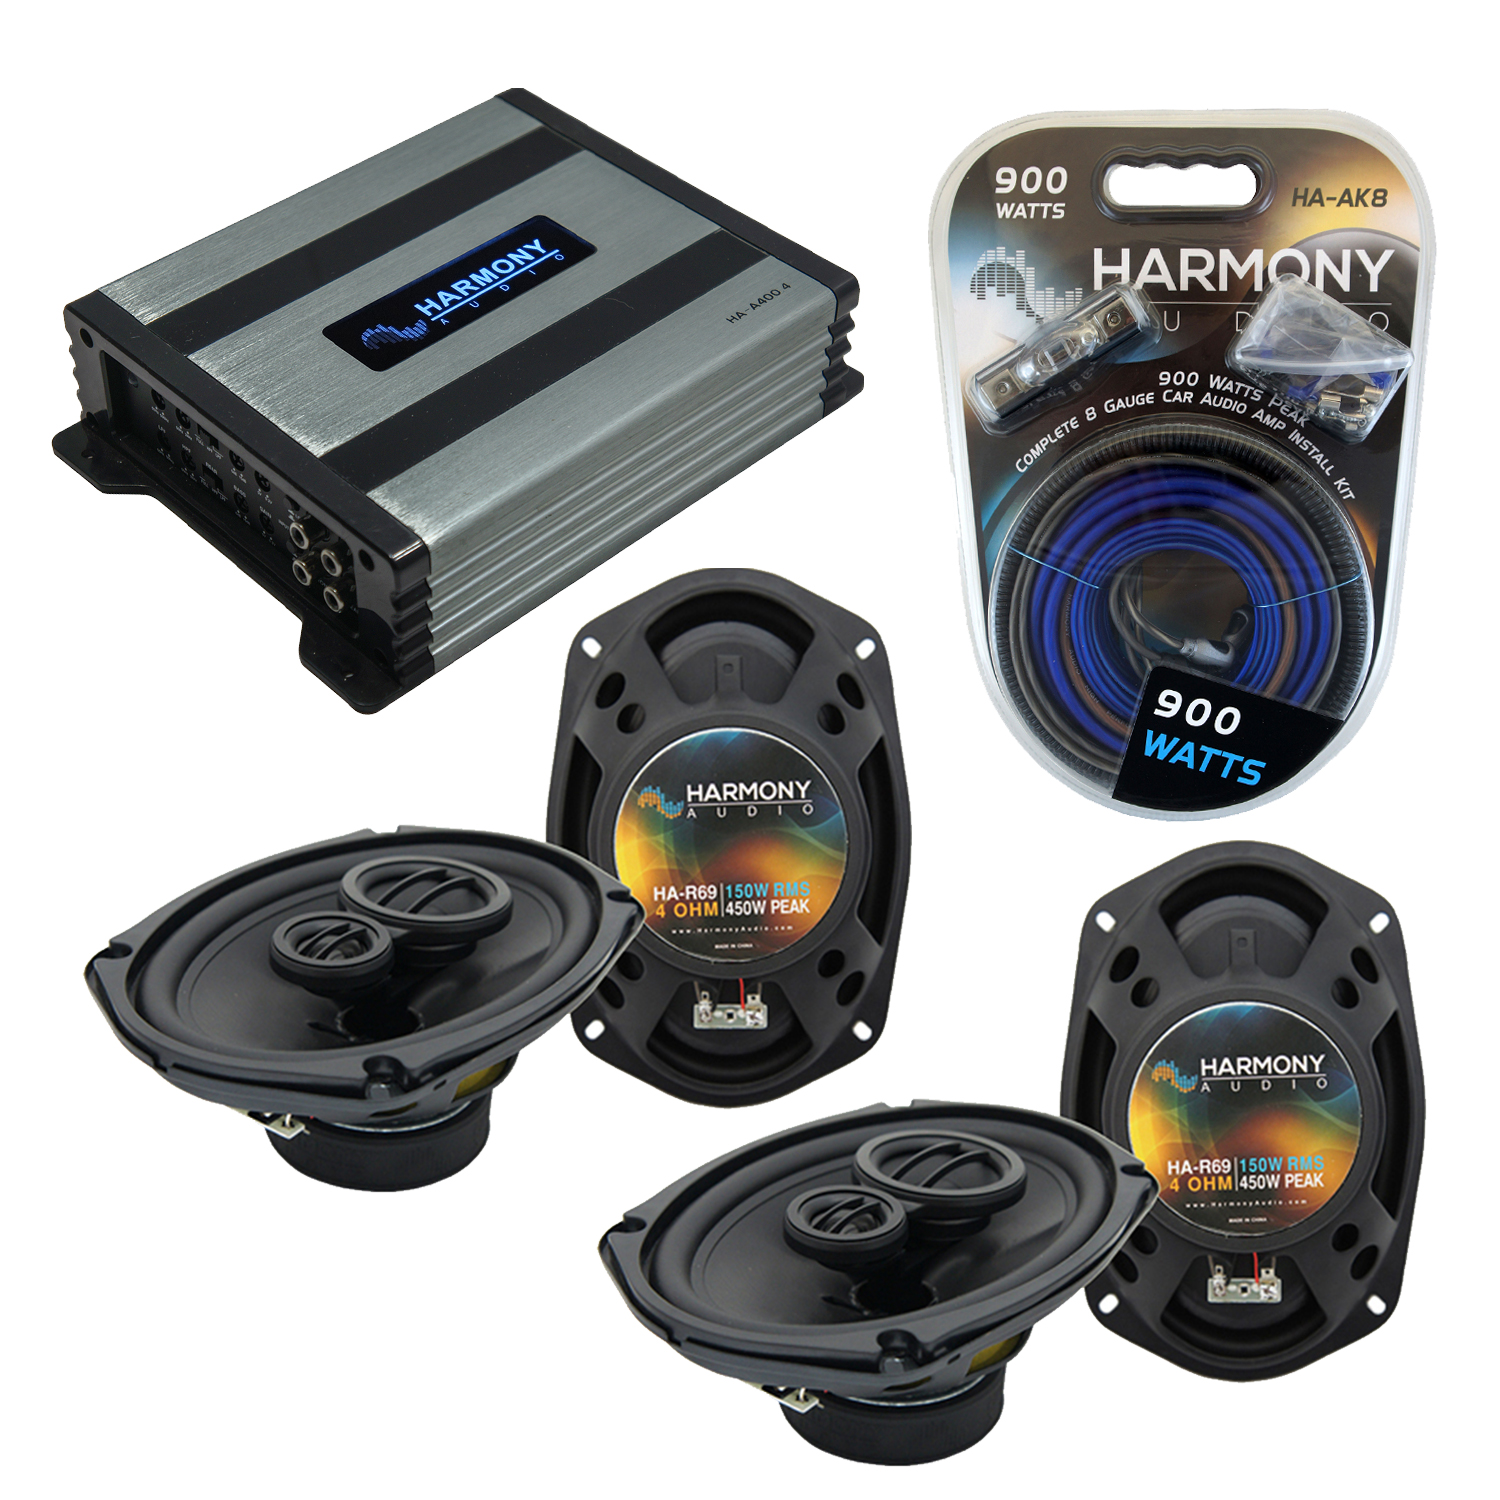 Compatible with Dodge Caliber 2007-2012 Factory Speaker Replacement Harmony (2) R69 & Harmony HA-A400.4 Amp